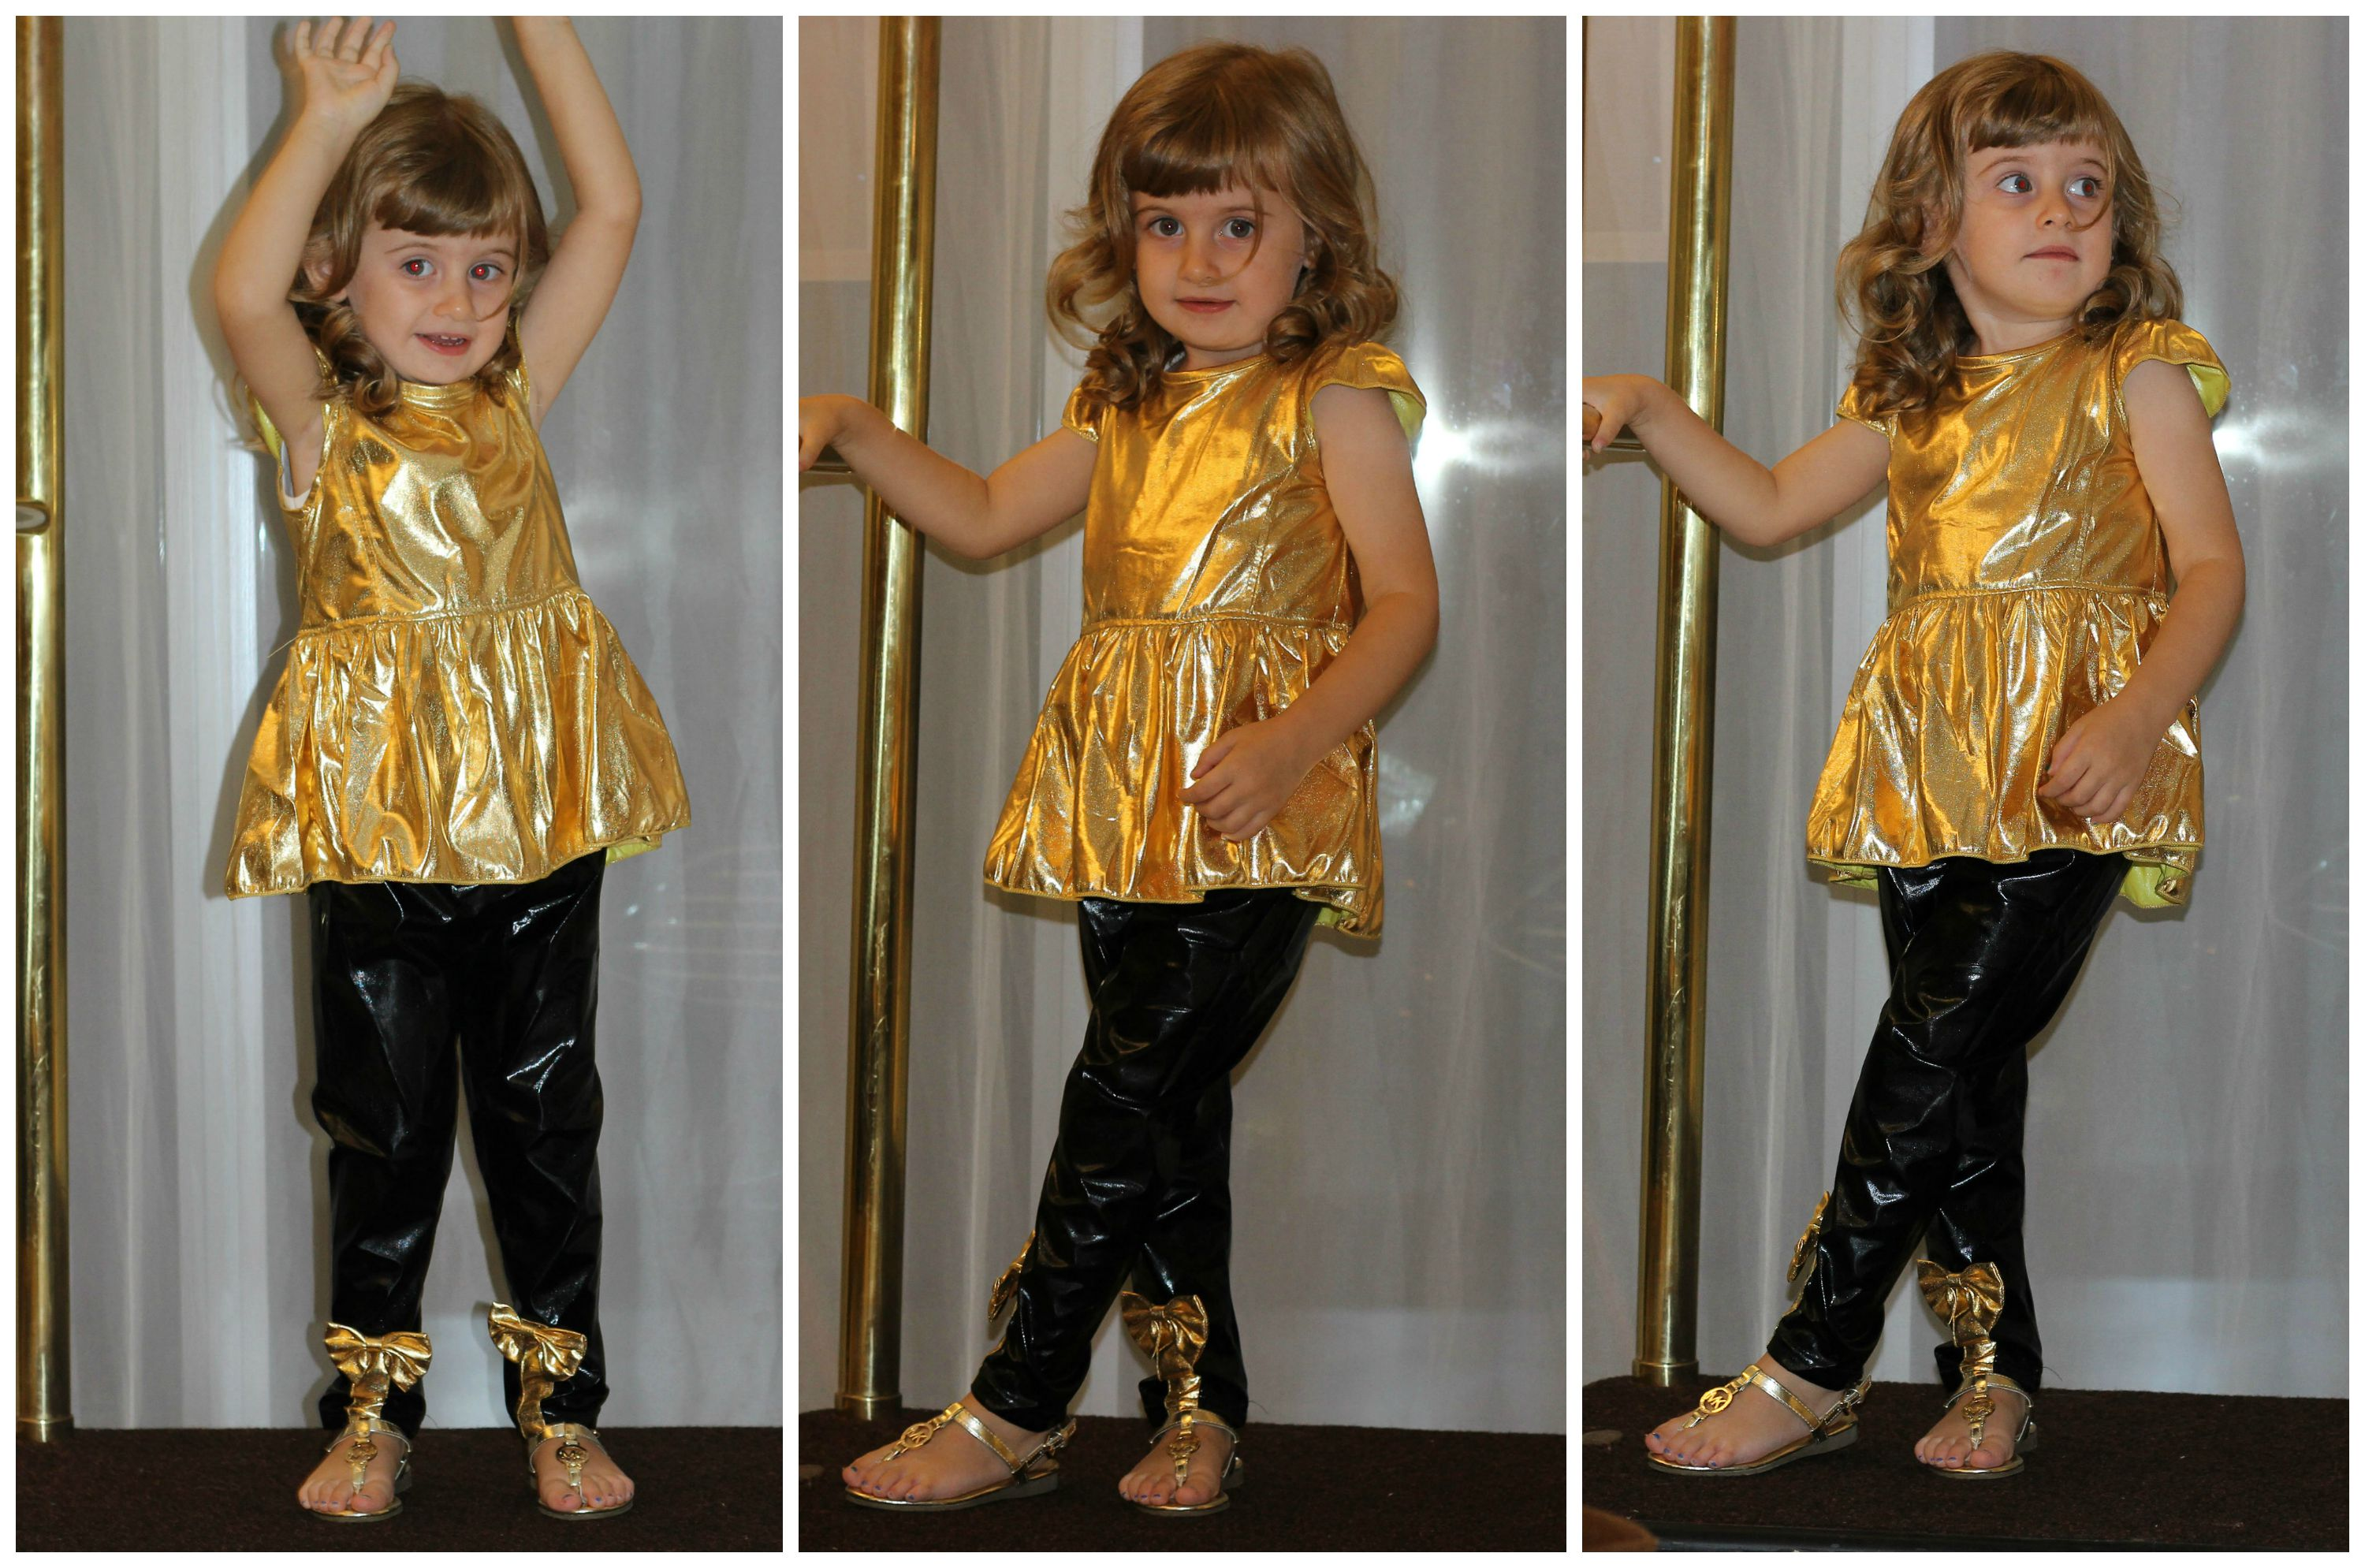 gaia masseroni gold and black outfit fashion kids abbigliamento bimba 3 anni